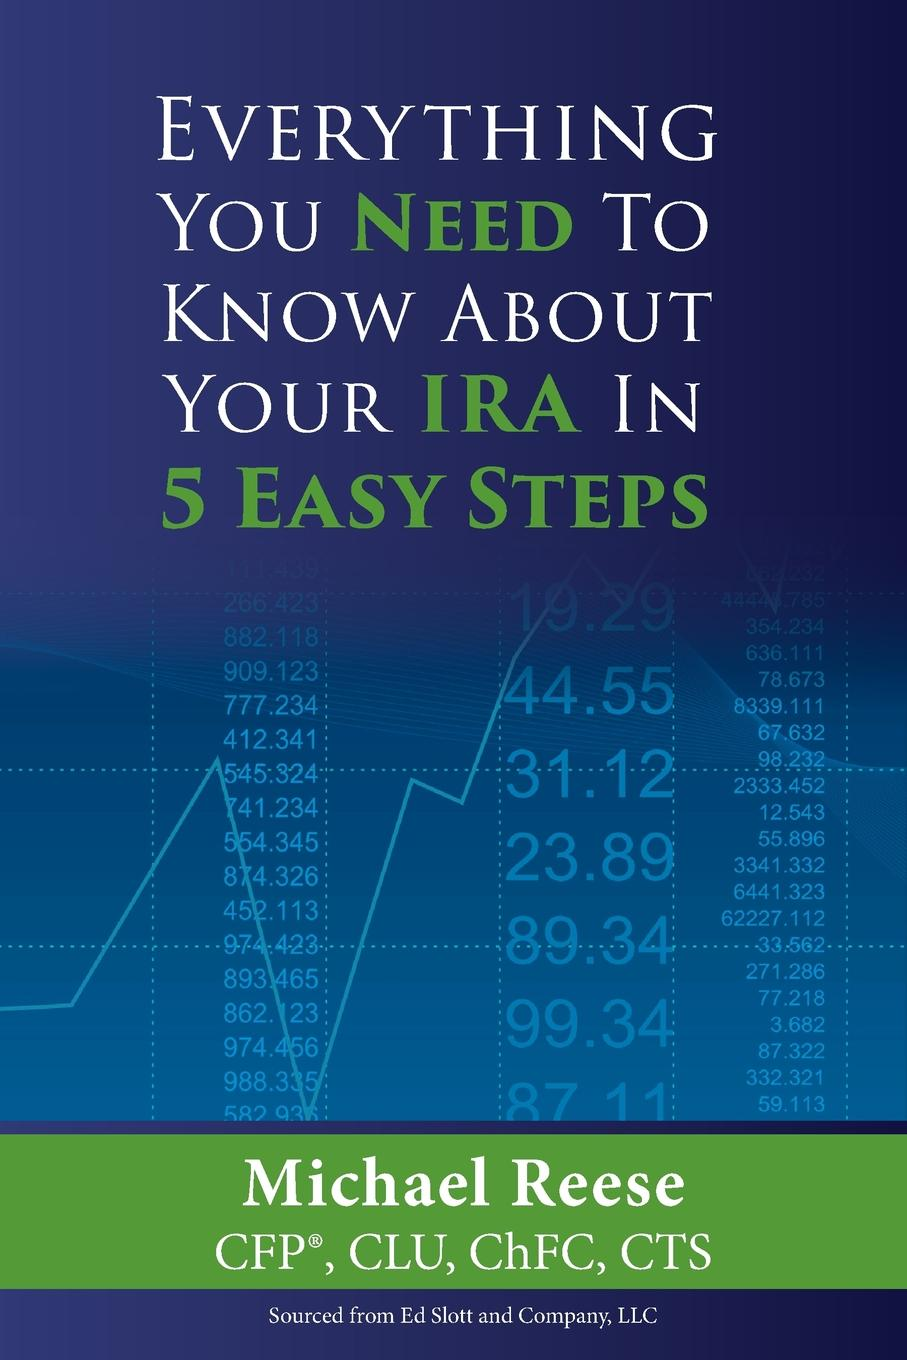 Everything You Need to Know About Your IRA in 5 Easy Steps According to the Employee Benefit Research Institute, $23.7 Trillion...